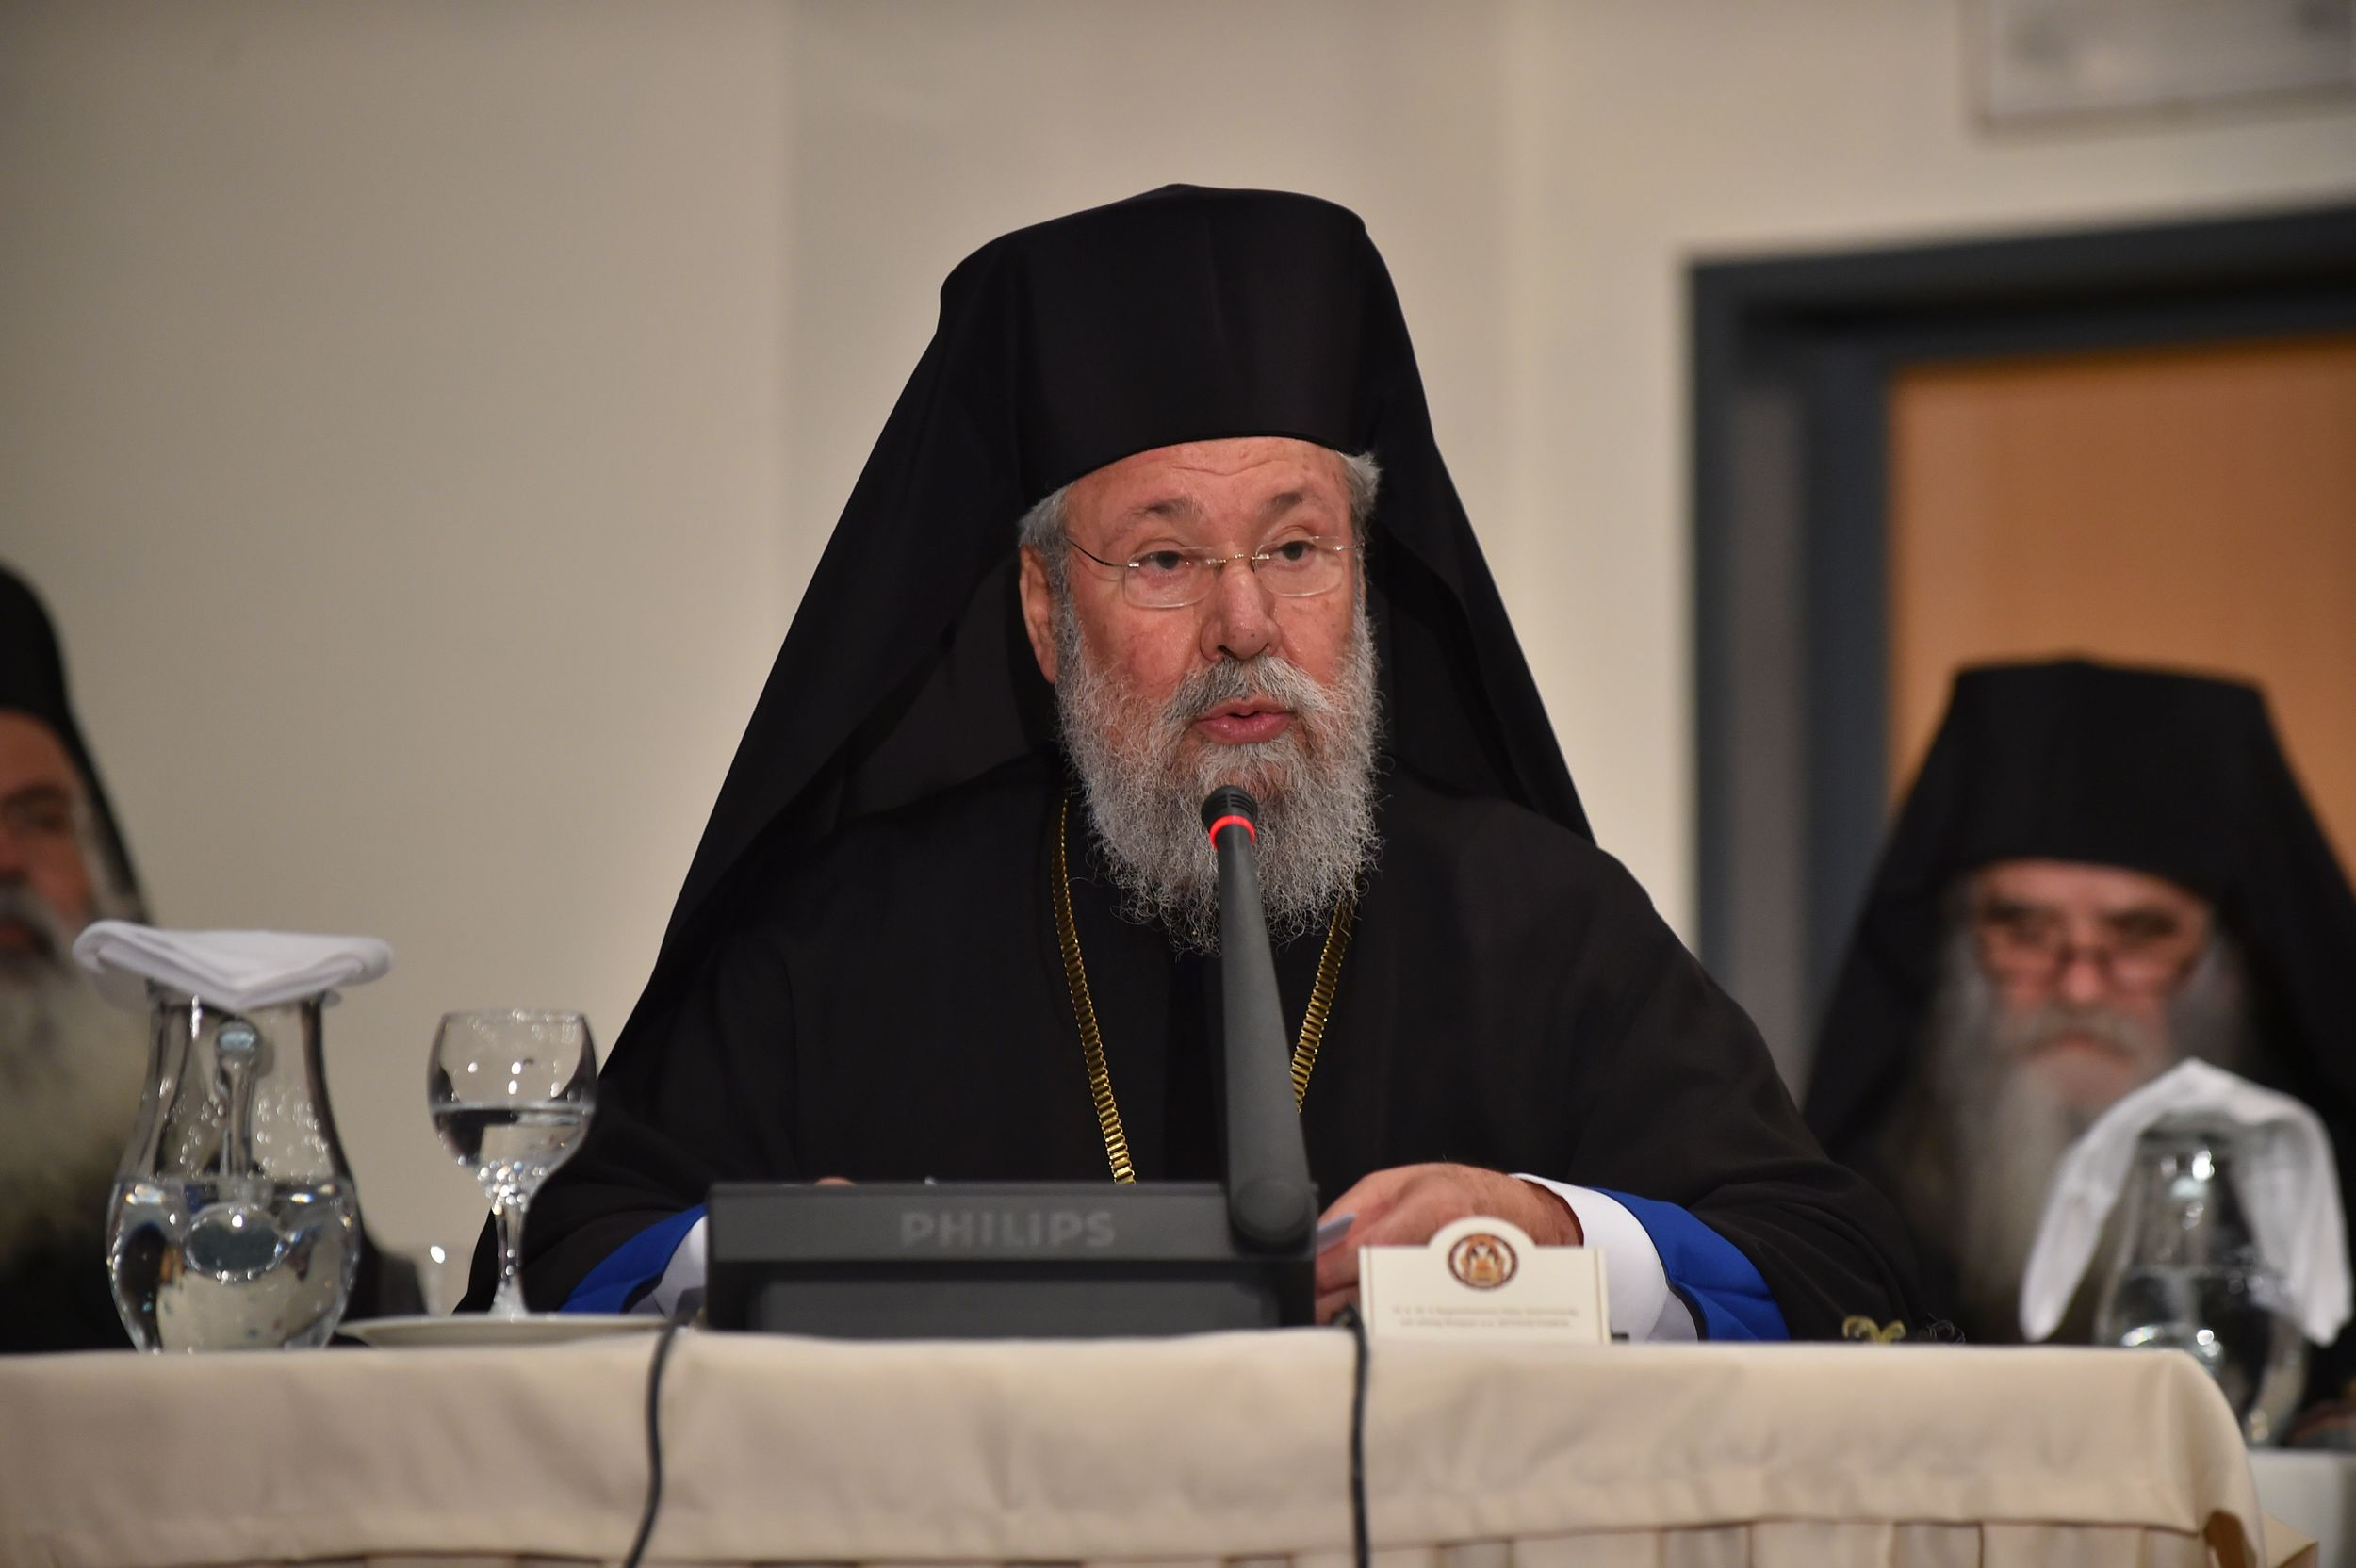 His Beatitude Archbishop Chrysostomos of Cyprus participates in the Opening Session of the Holy and Great Council of the Orthodox Church at the Orthodox Academy of Crete. PHOTO: © ROMANIAN ORTHODOX CHURCH/ROBERT NICOLAE.